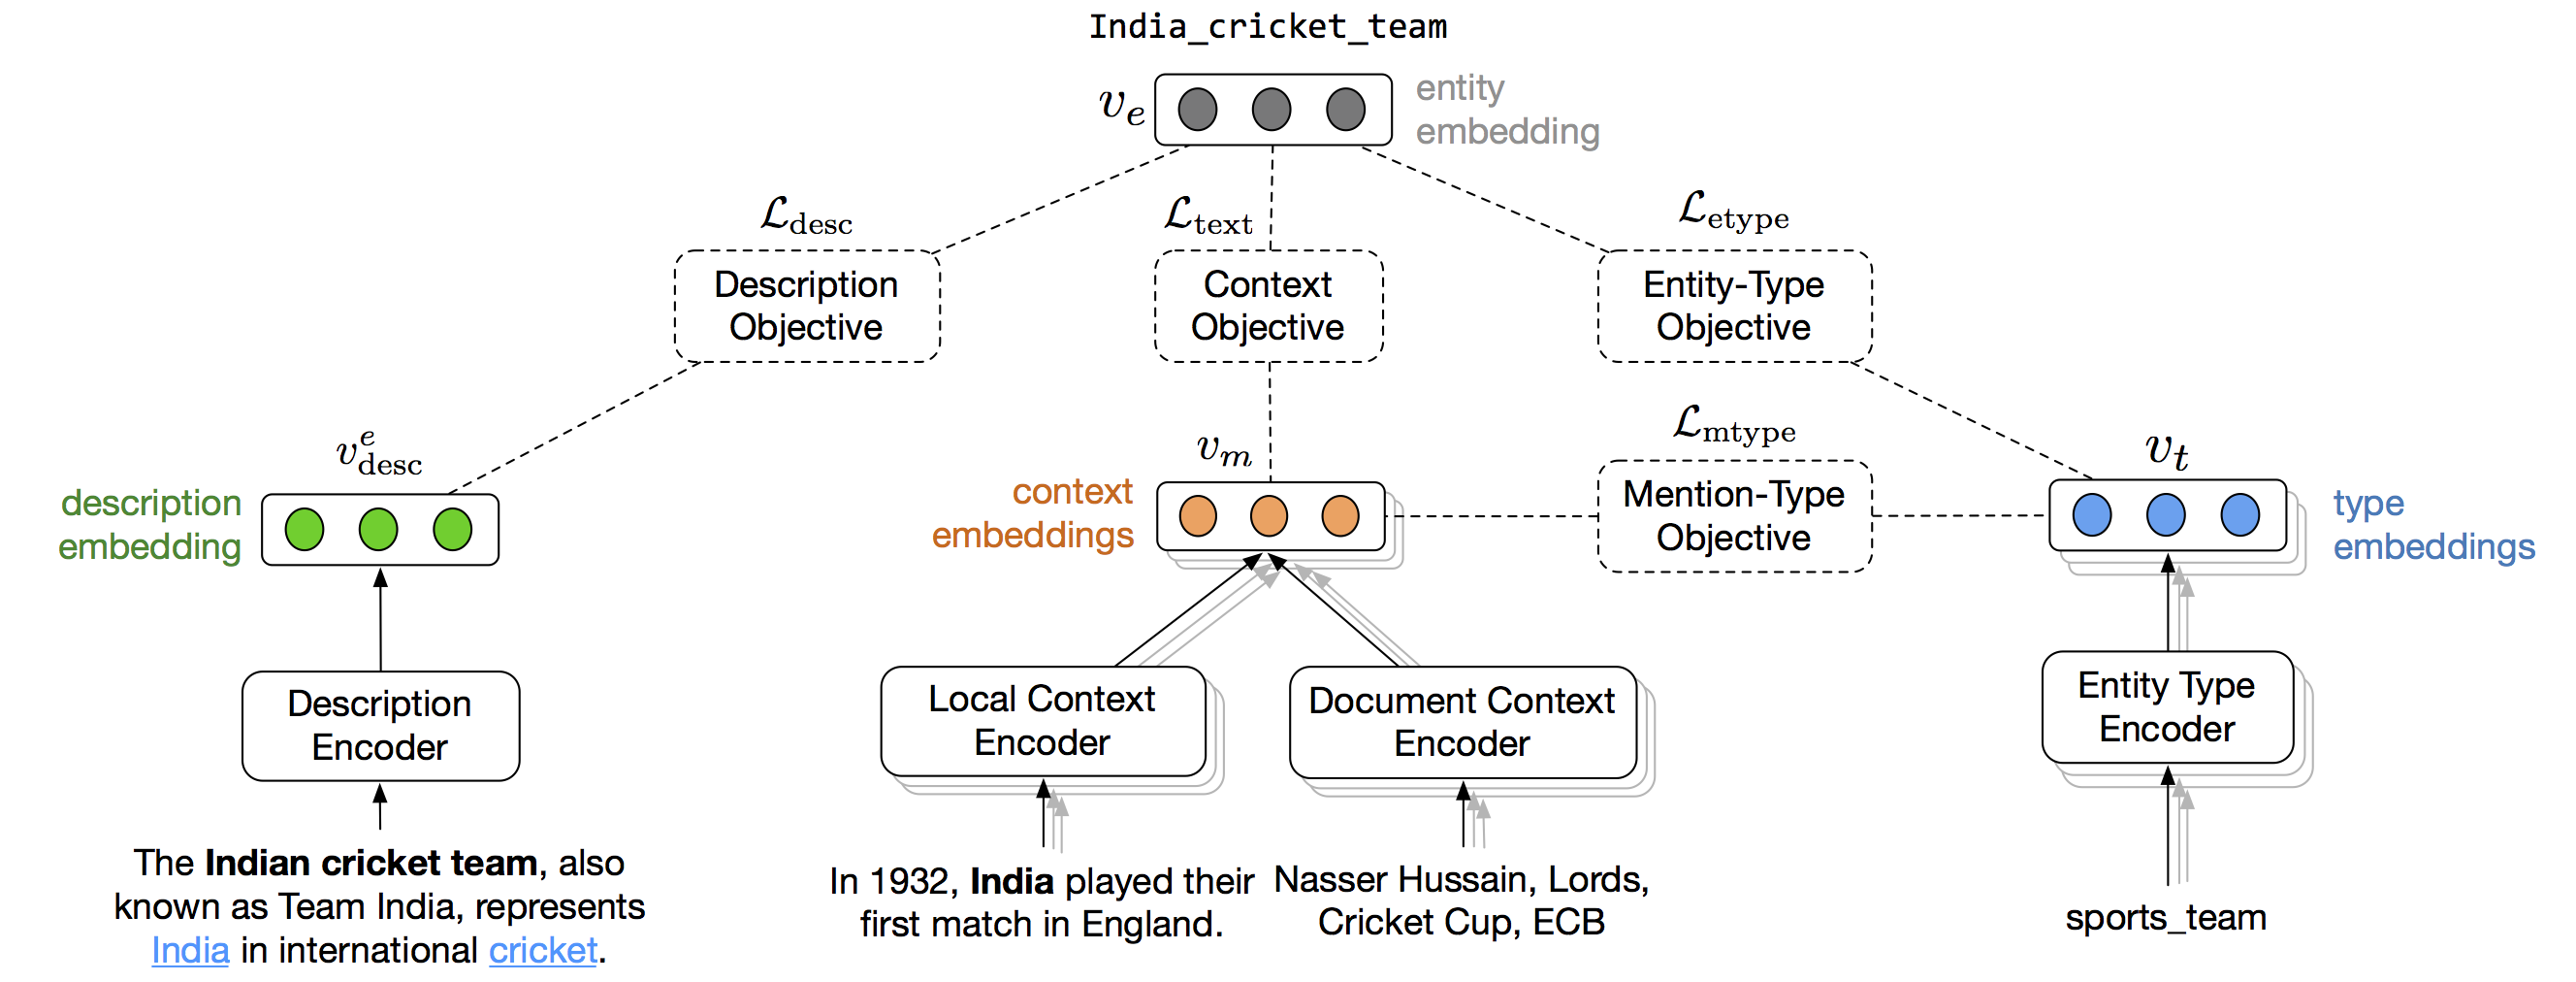 https://raw.githubusercontent.com/nitishgupta/neural-el/master/overview.png